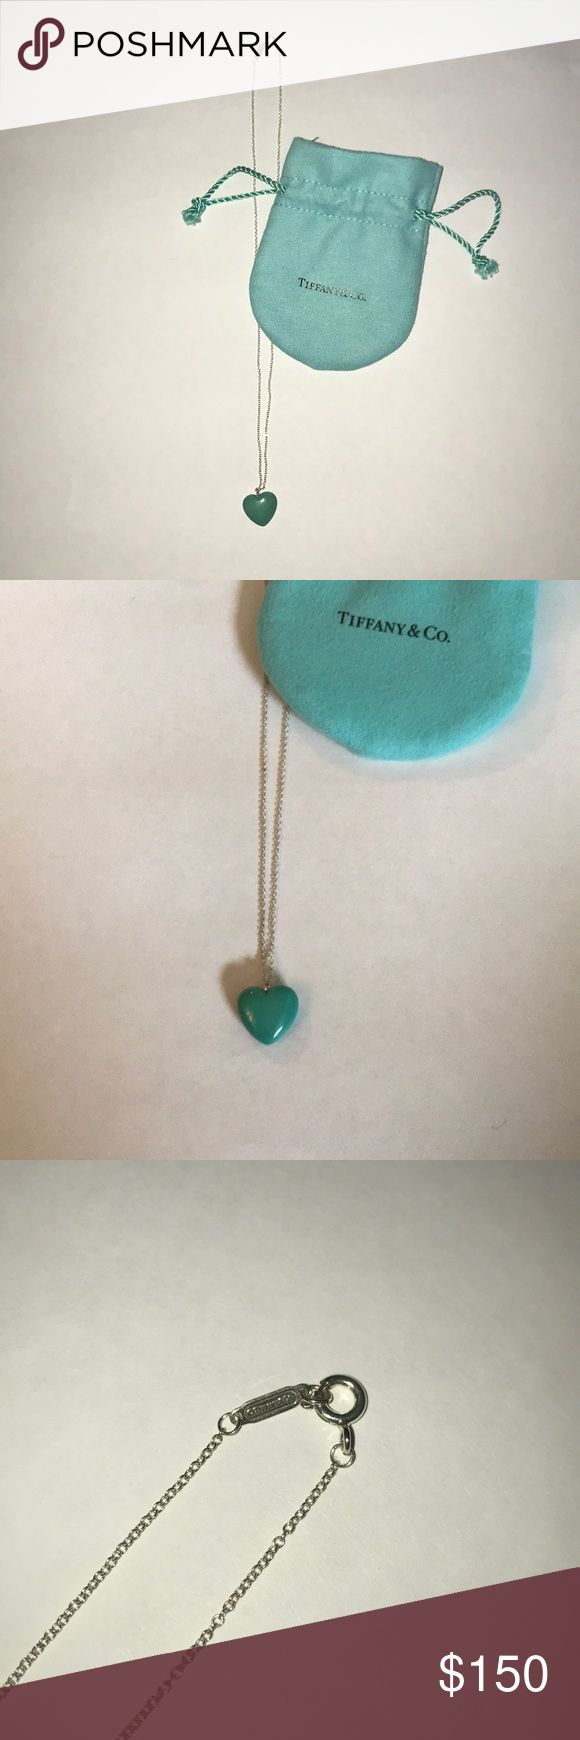 Tiffany and Co Tiffany blue full heart pendant. Tiffany and Co authentic Tiffany and Co blue full heart pendant. This is not a flat pendant, it is 3D and .25 inches thick. Just cleaned at Tiffany and Co. for sale. Beautiful condition, rarely worn. Comes with Tiffany and Co. drawstring dust pouch. Tiffany & Co. Jewelry Necklaces